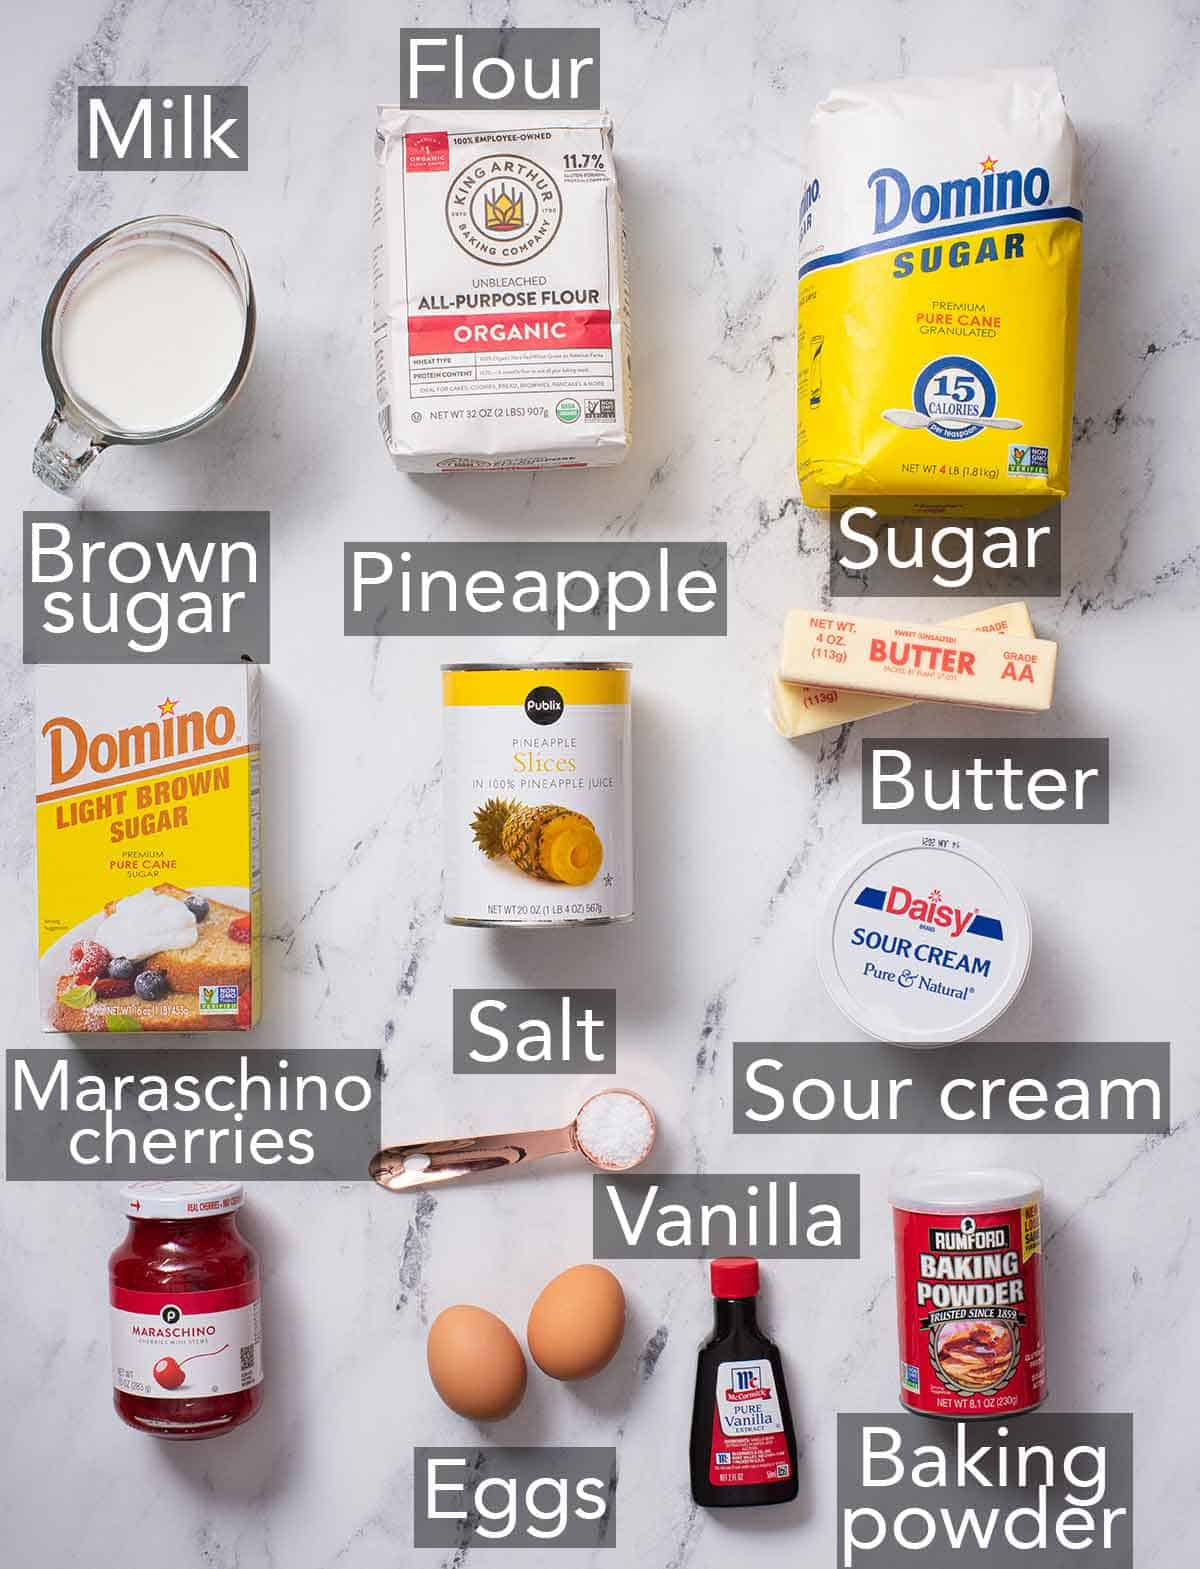 Ingredients needed to make a pineapple upside down cake.